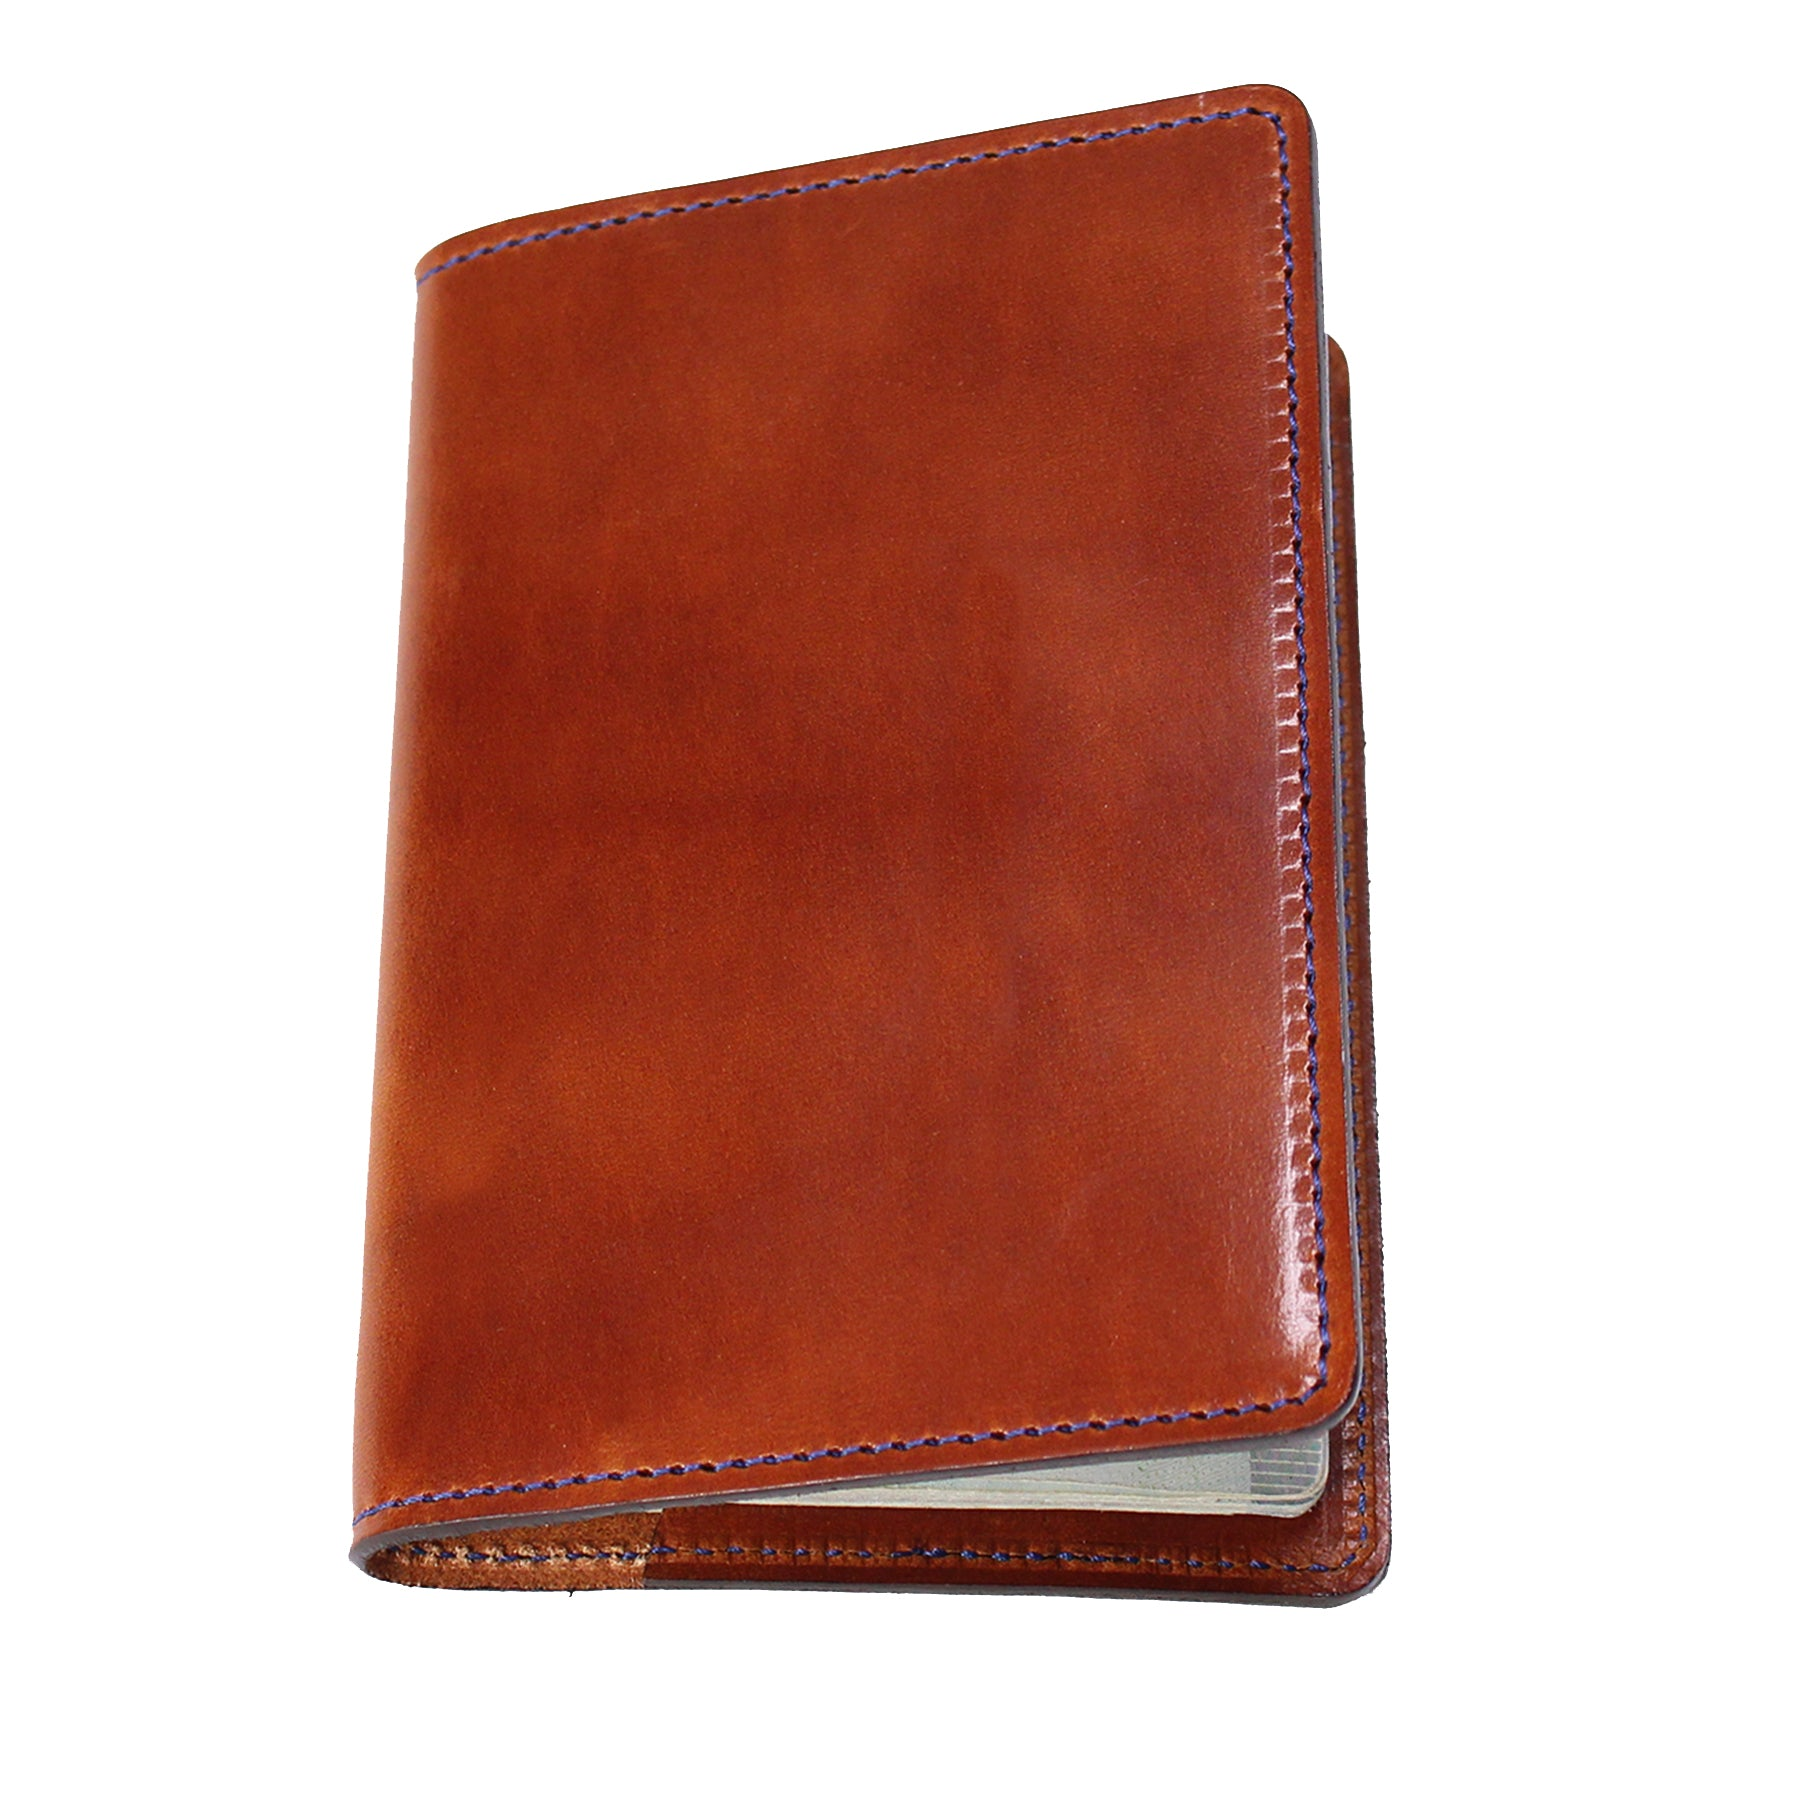 stylish passport wallet brown for men and women